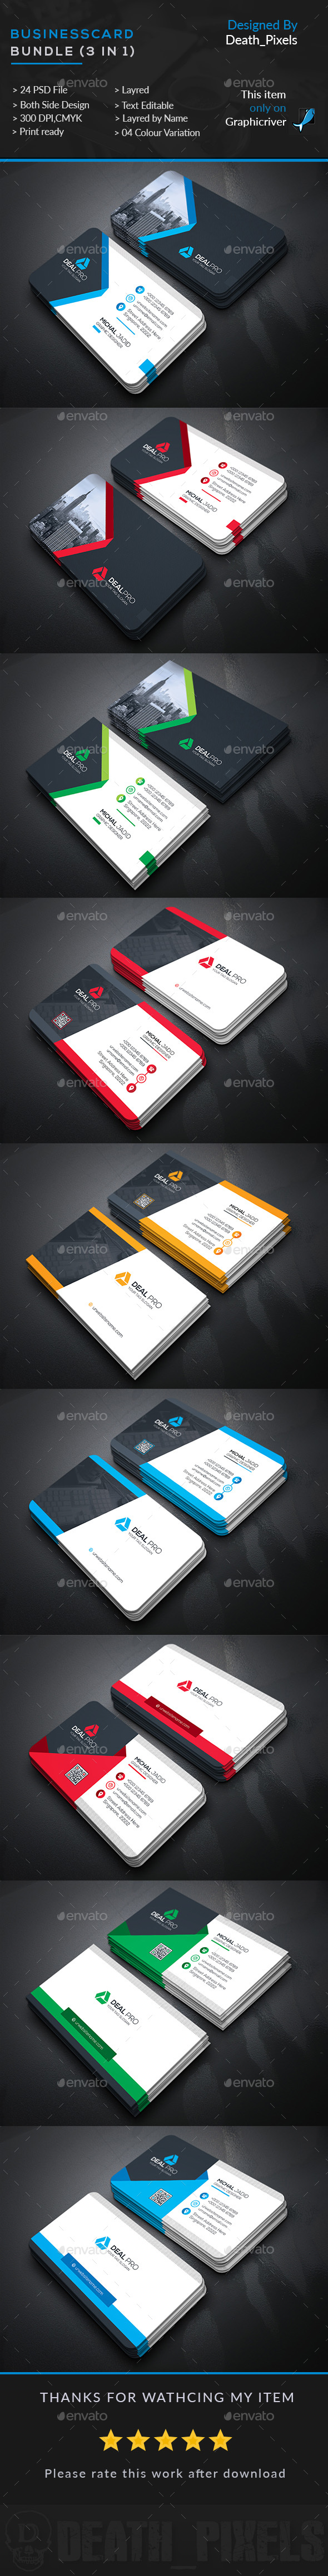 Business card bundle 3 in 1 business cards print templates business card bundle 3 in 1 business cards print templates download here accmission Choice Image